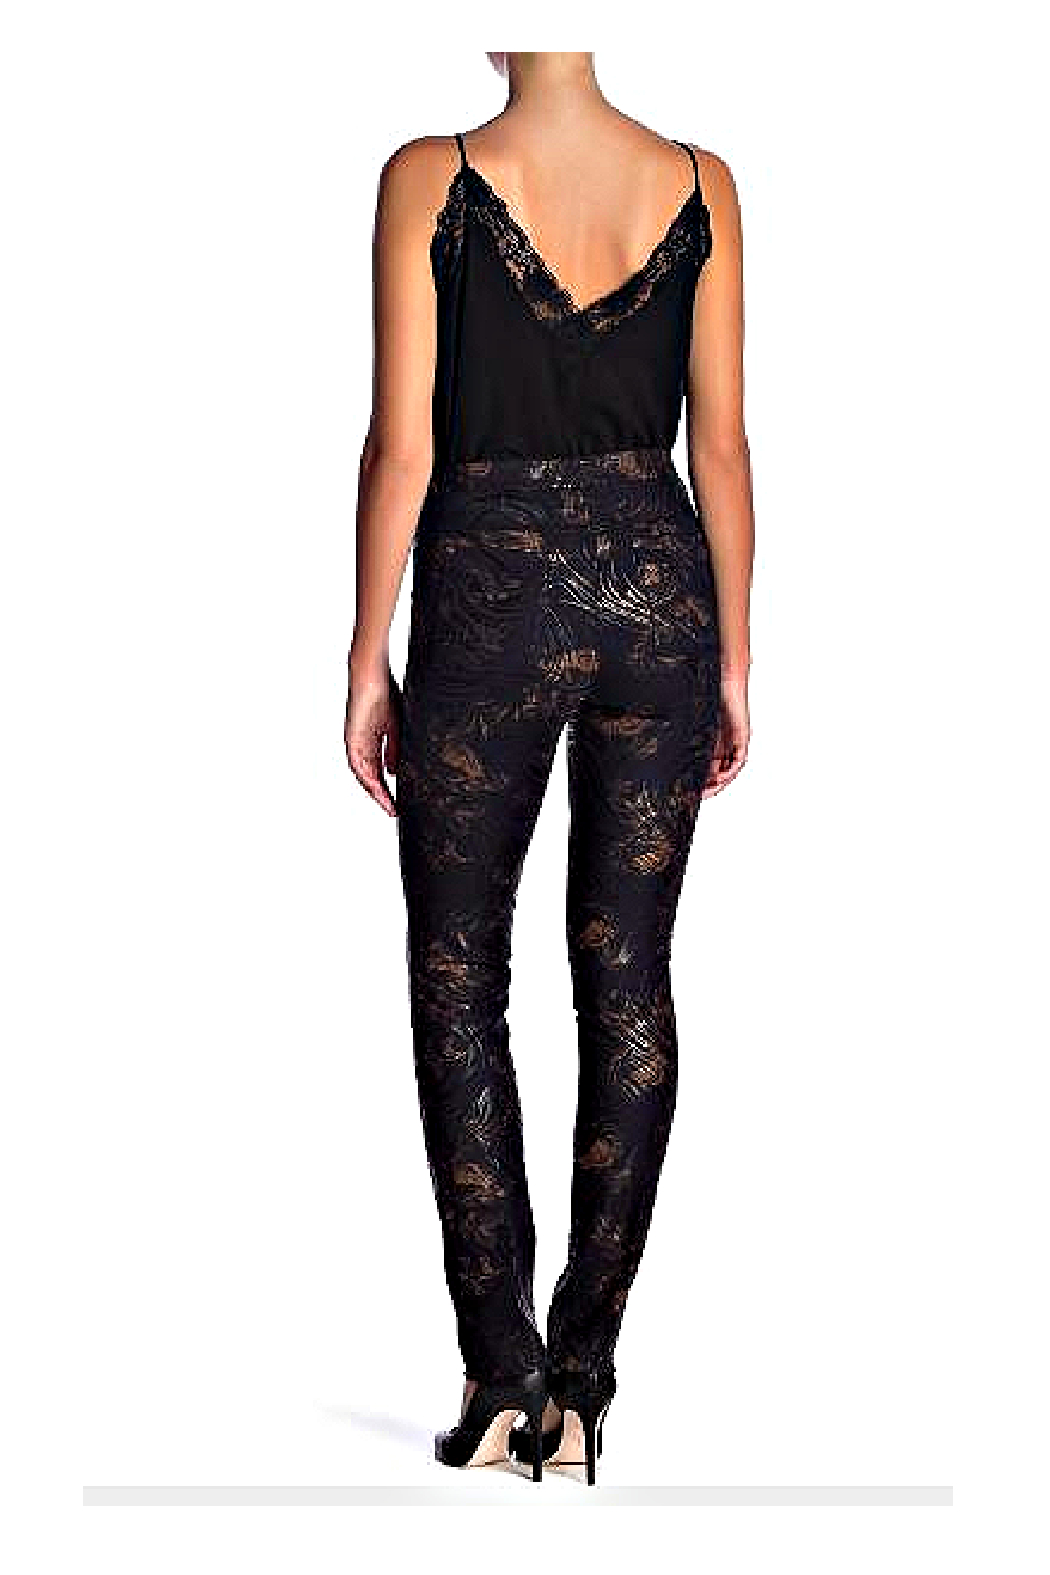 INSIGHT NYC Black With Copper Mocha Rose Scuba Pant - Front Full Image